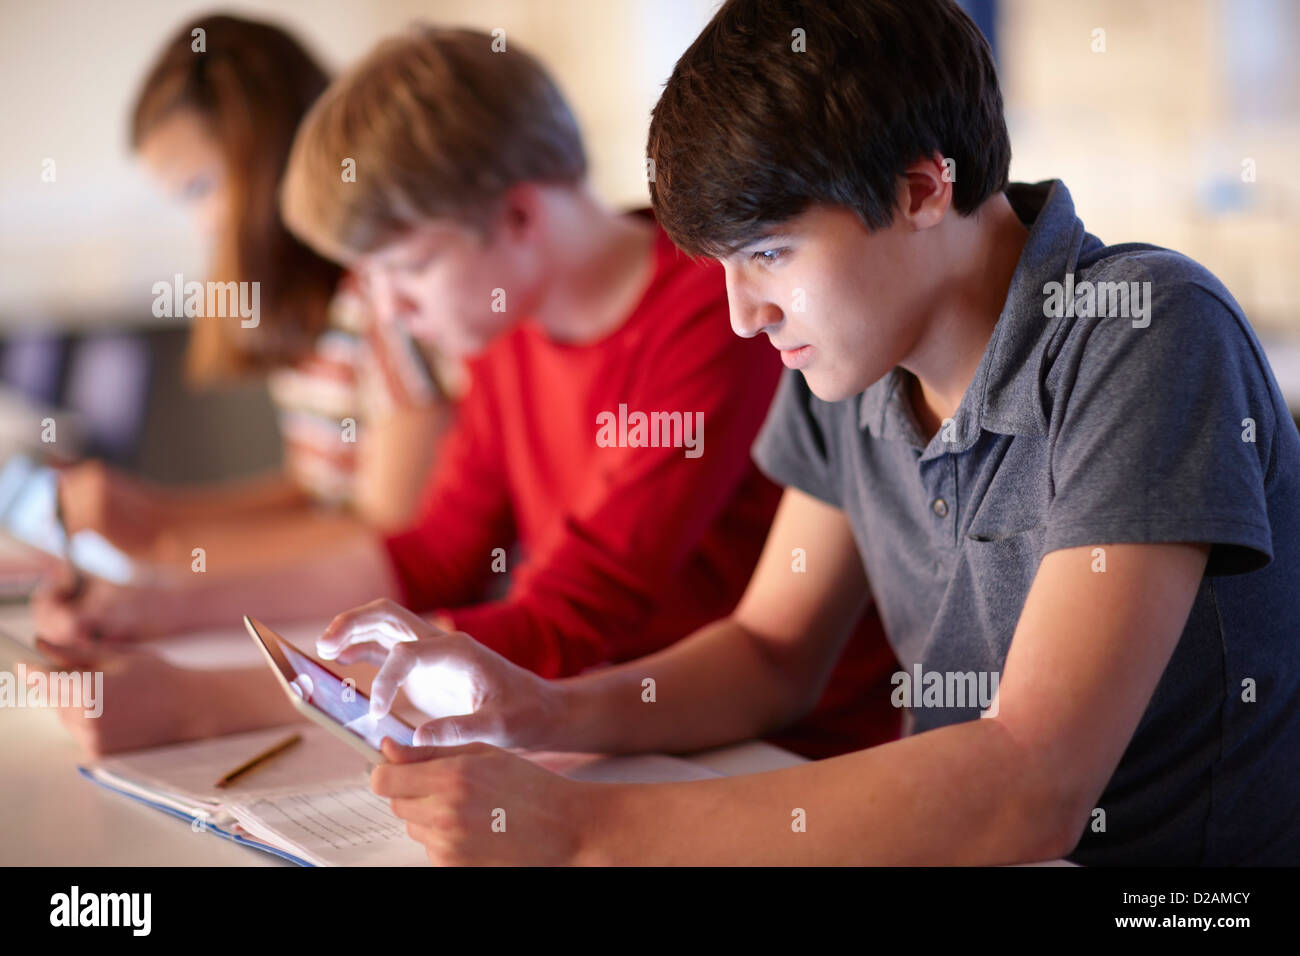 Students using tablet computers in class - Stock Image